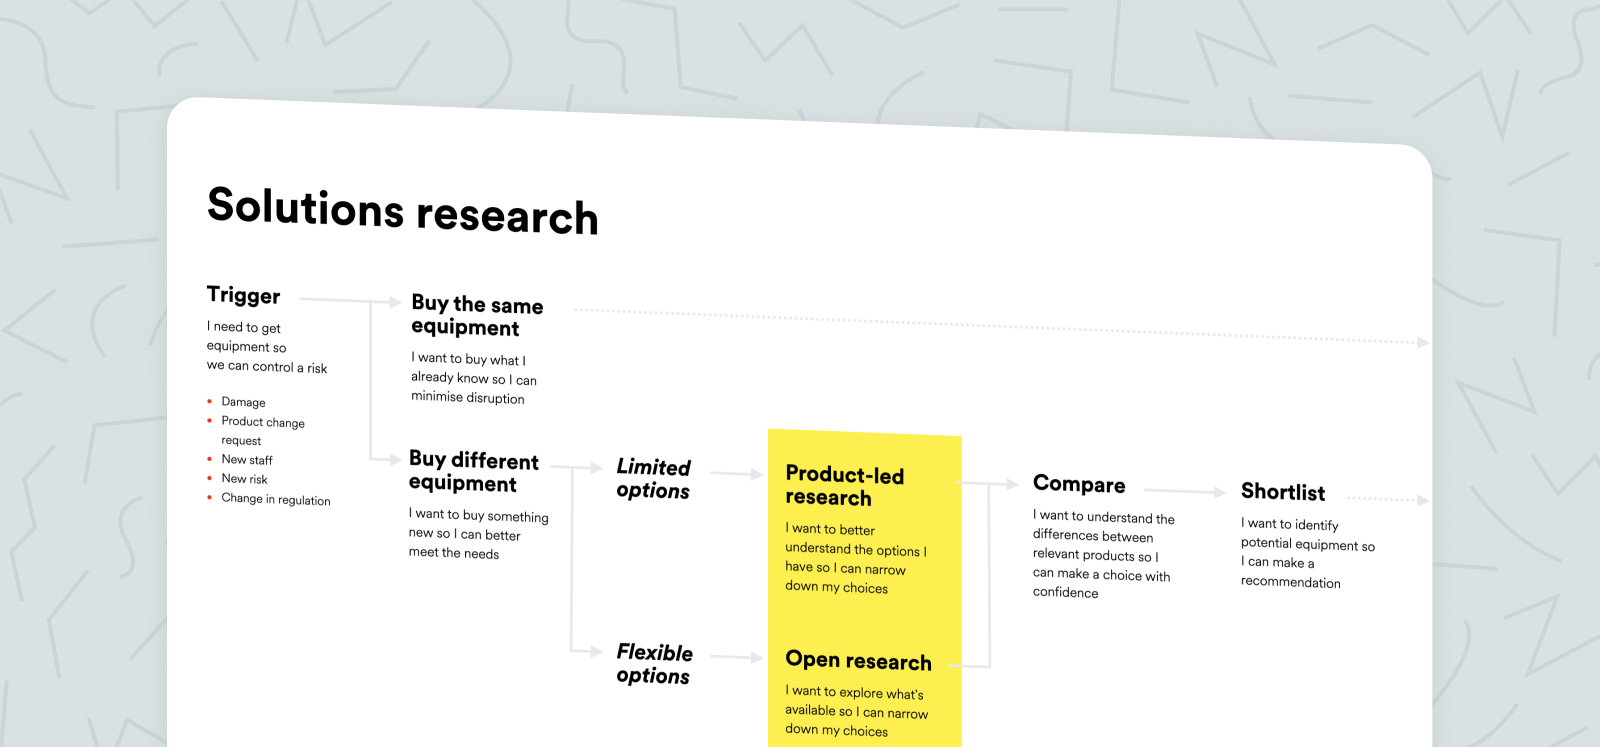 Solutions research mapping diagram